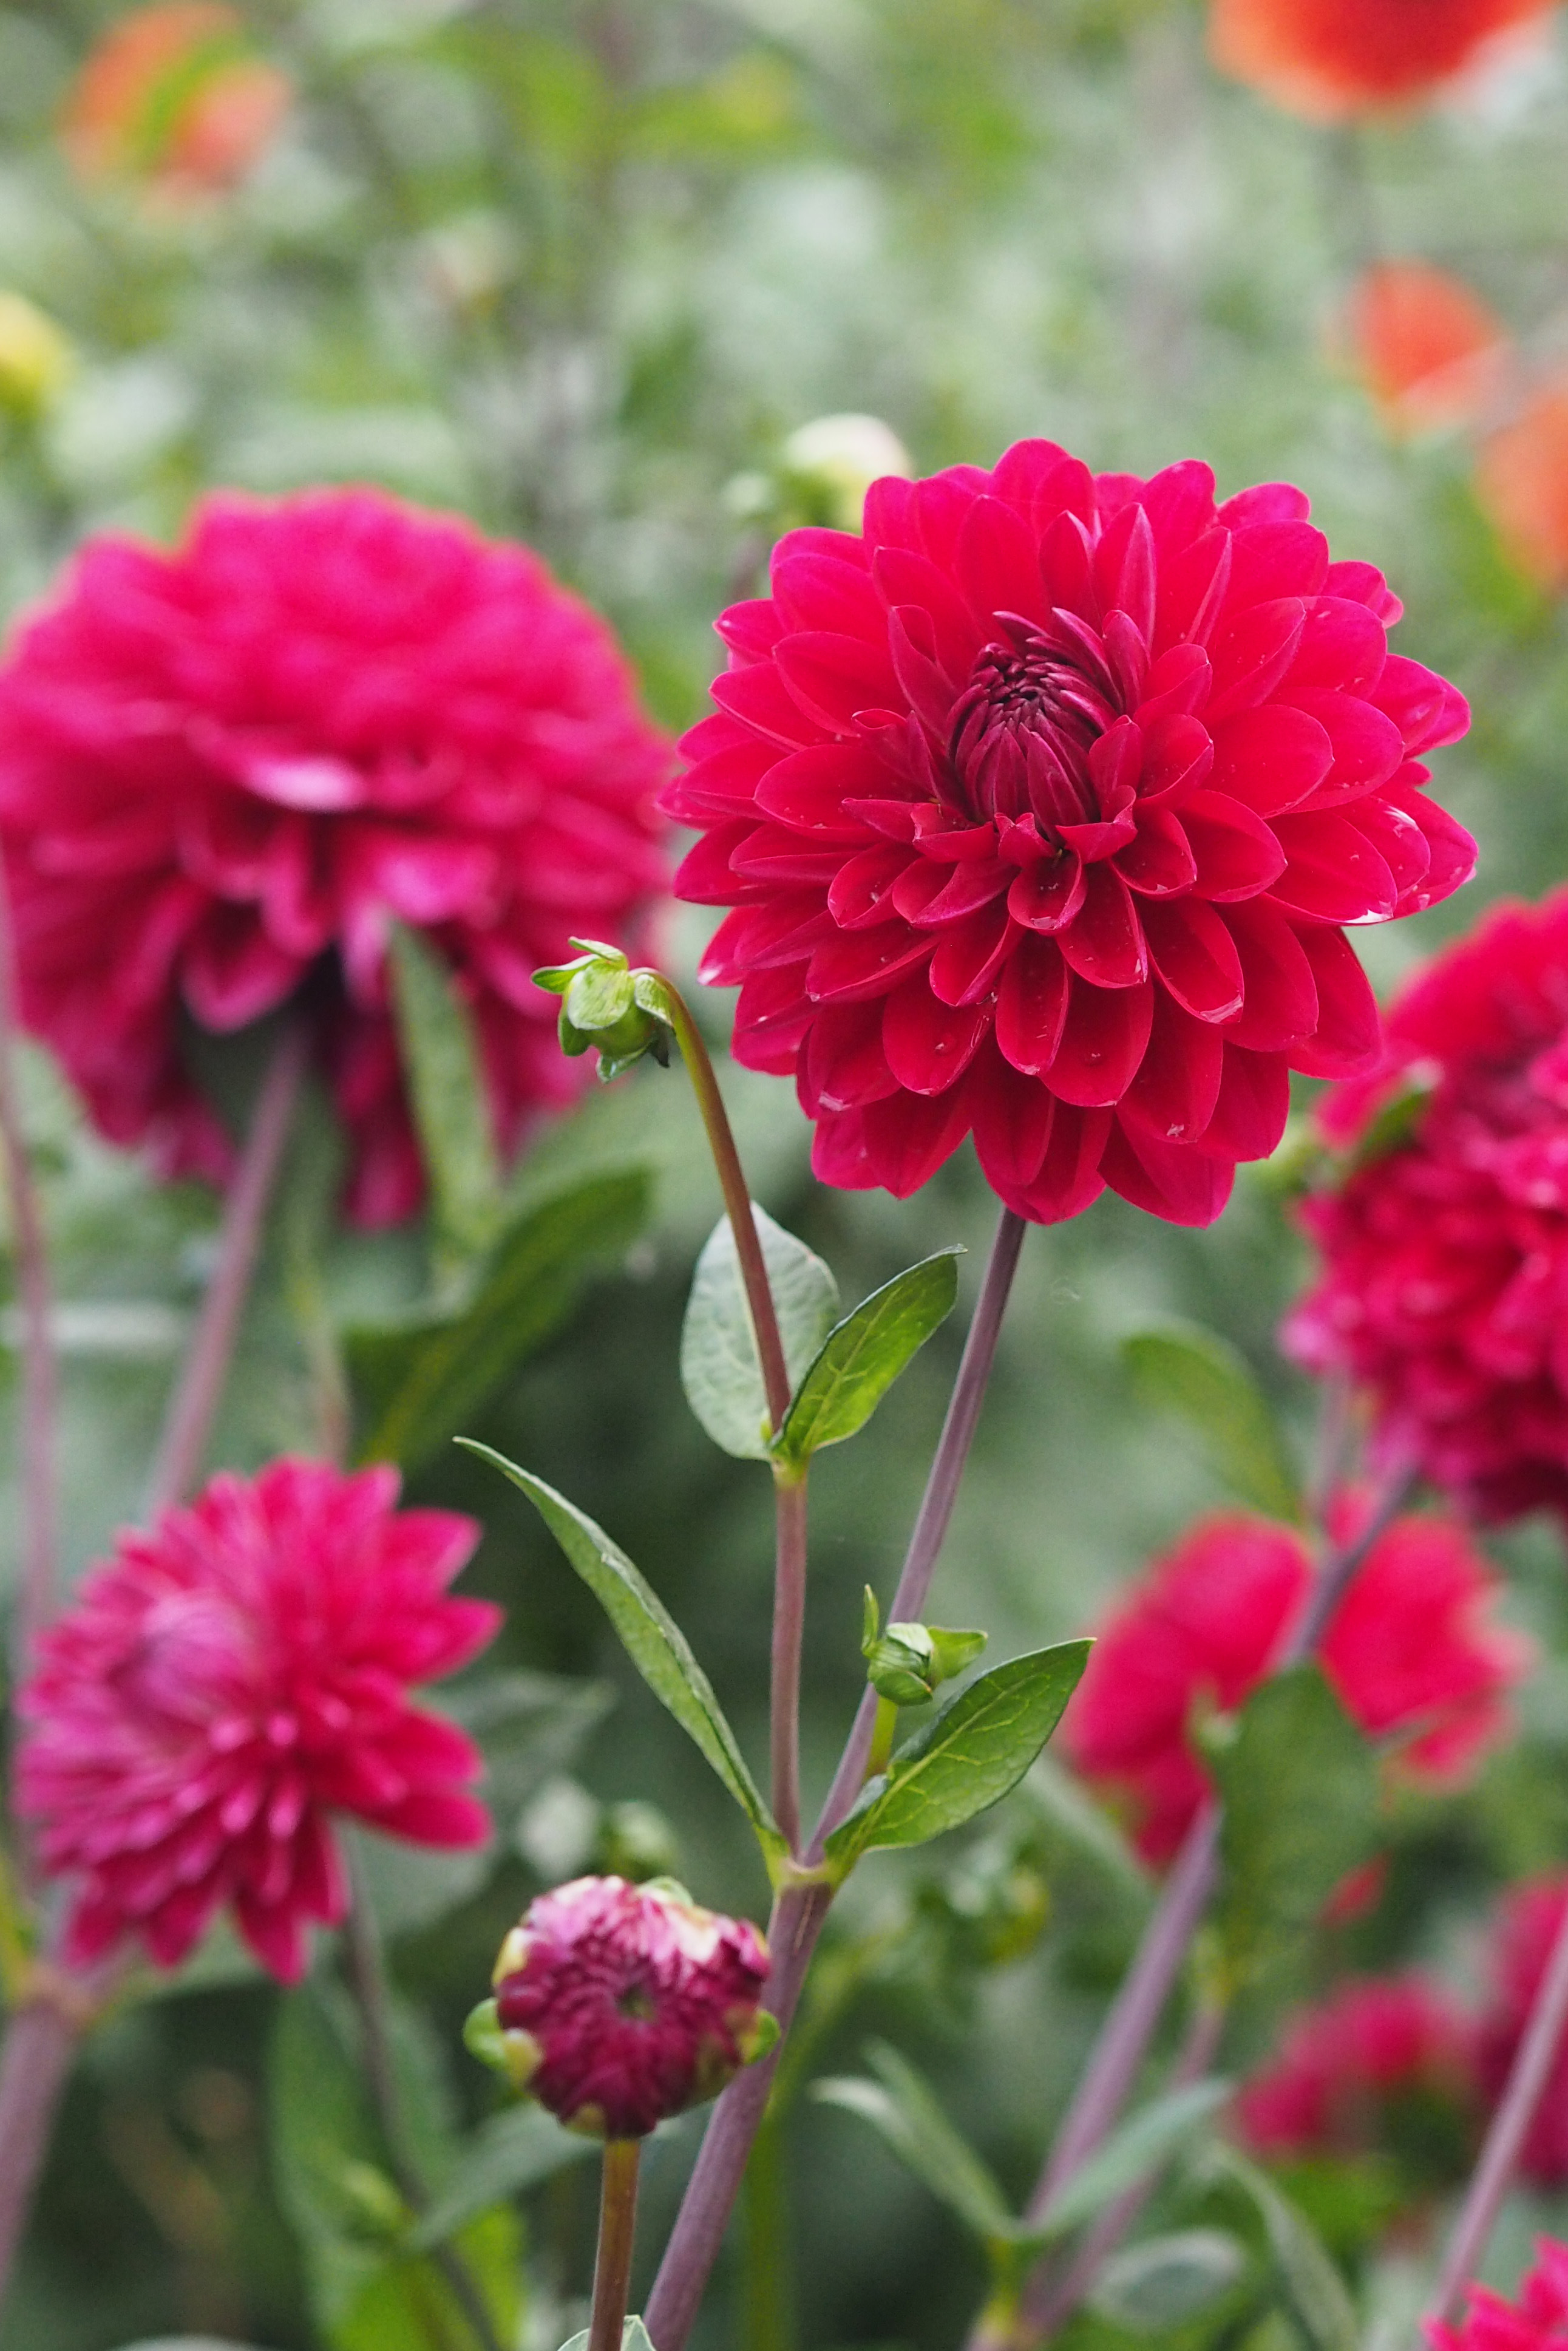 Dahlia 'Con Amore' in the September garden